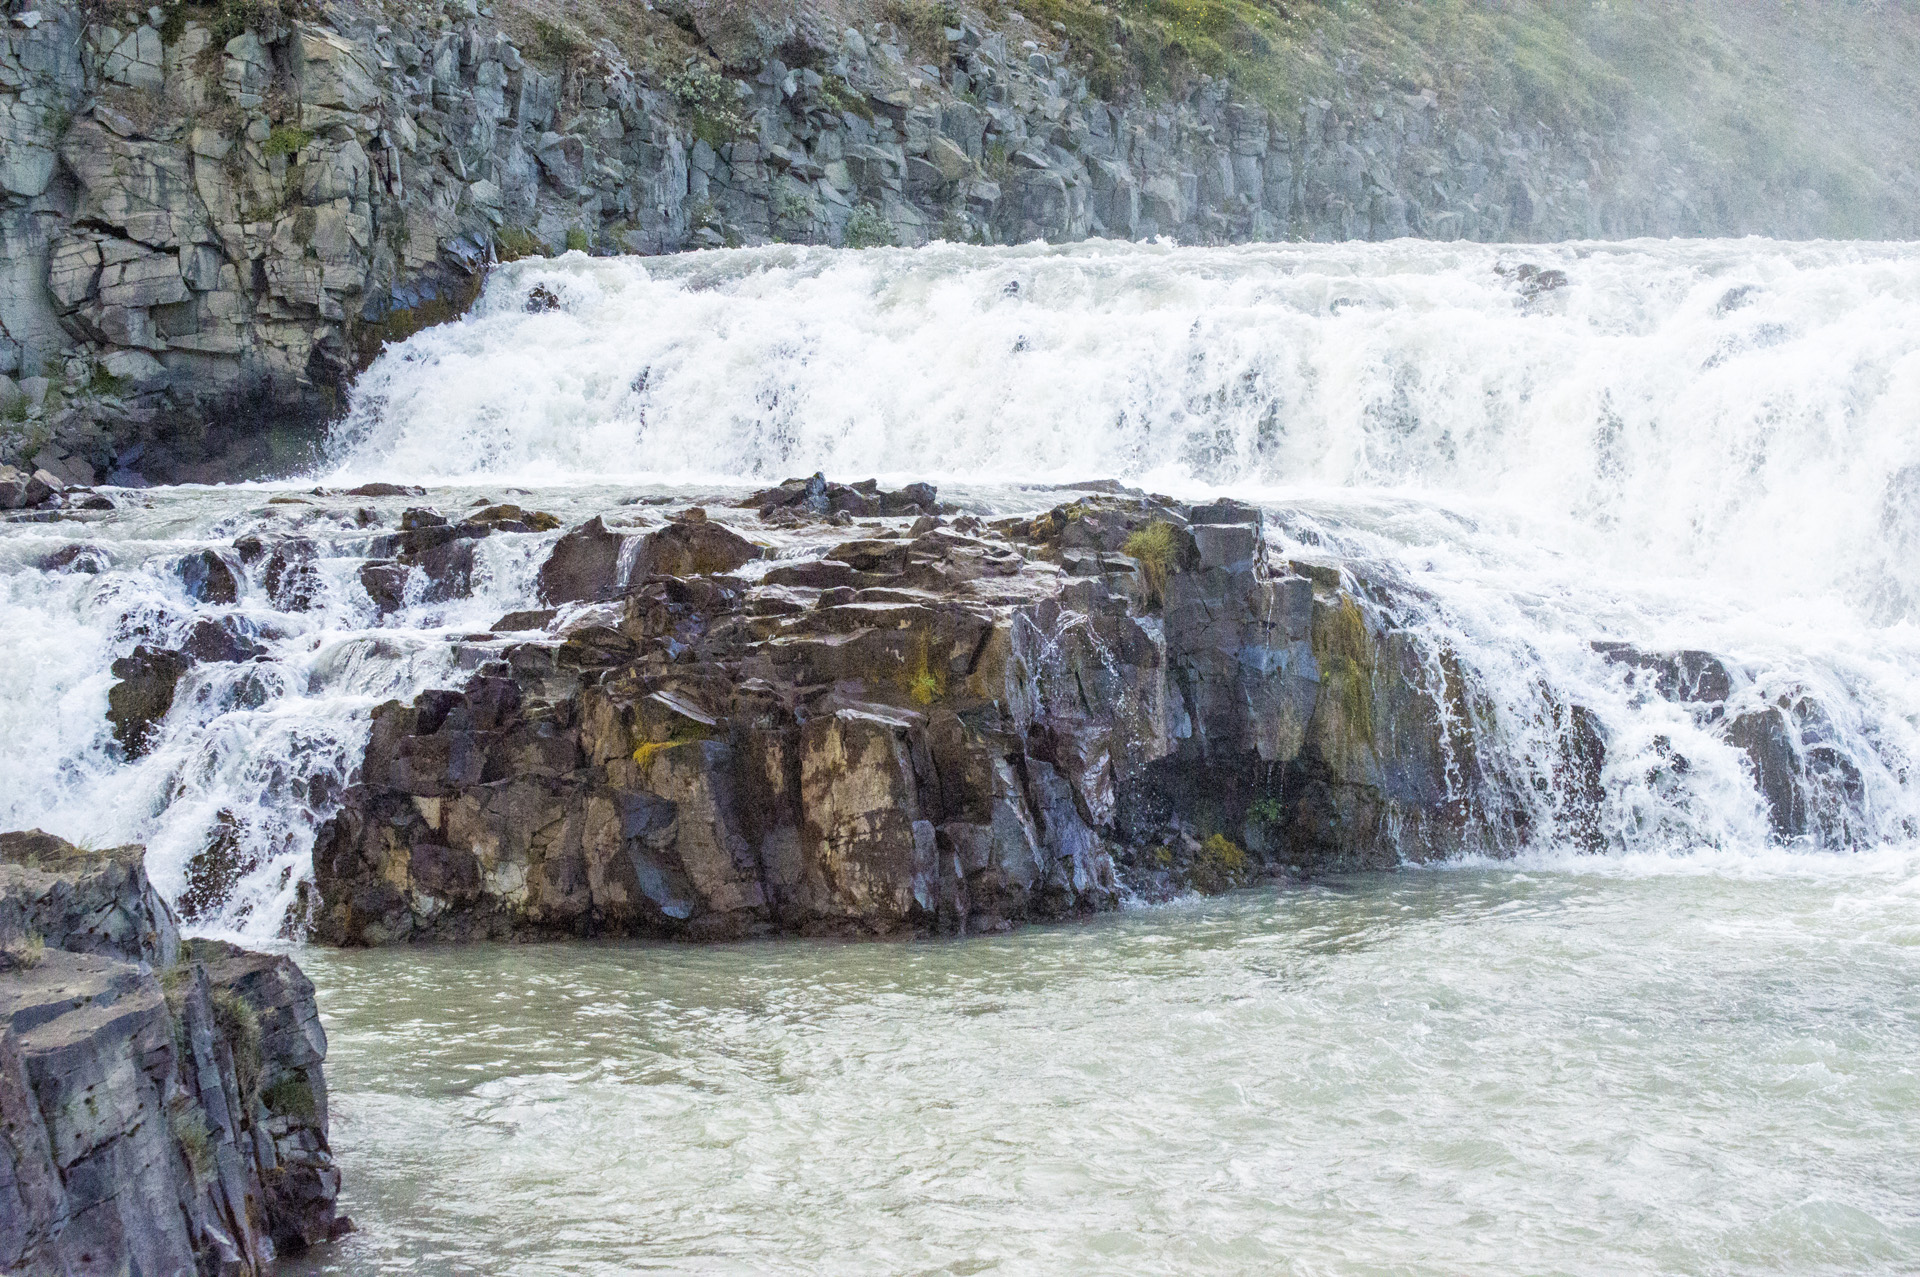 Rock formation rise out of the Hvitá river, near upper part of the  Gullfoss waterfall, Suðurland region, Iceland